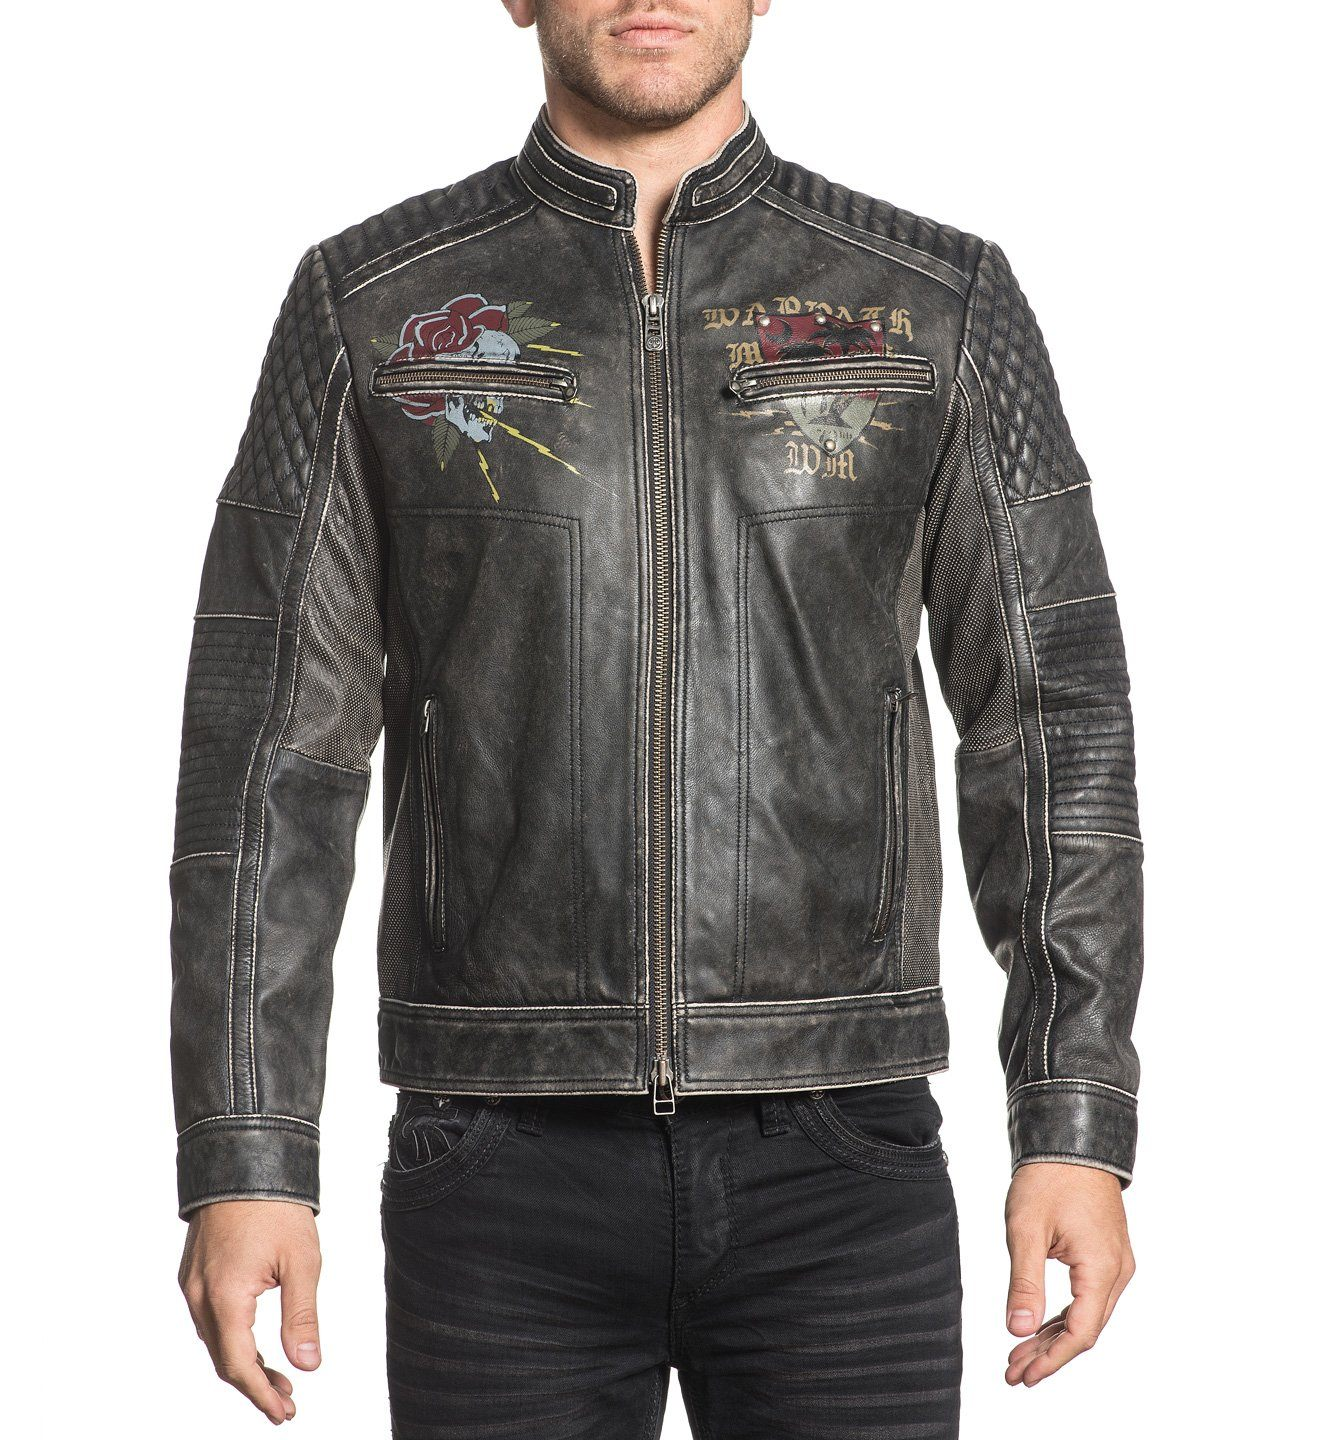 Fast Motors Jacket - Mens Jackets - Affliction Clothing